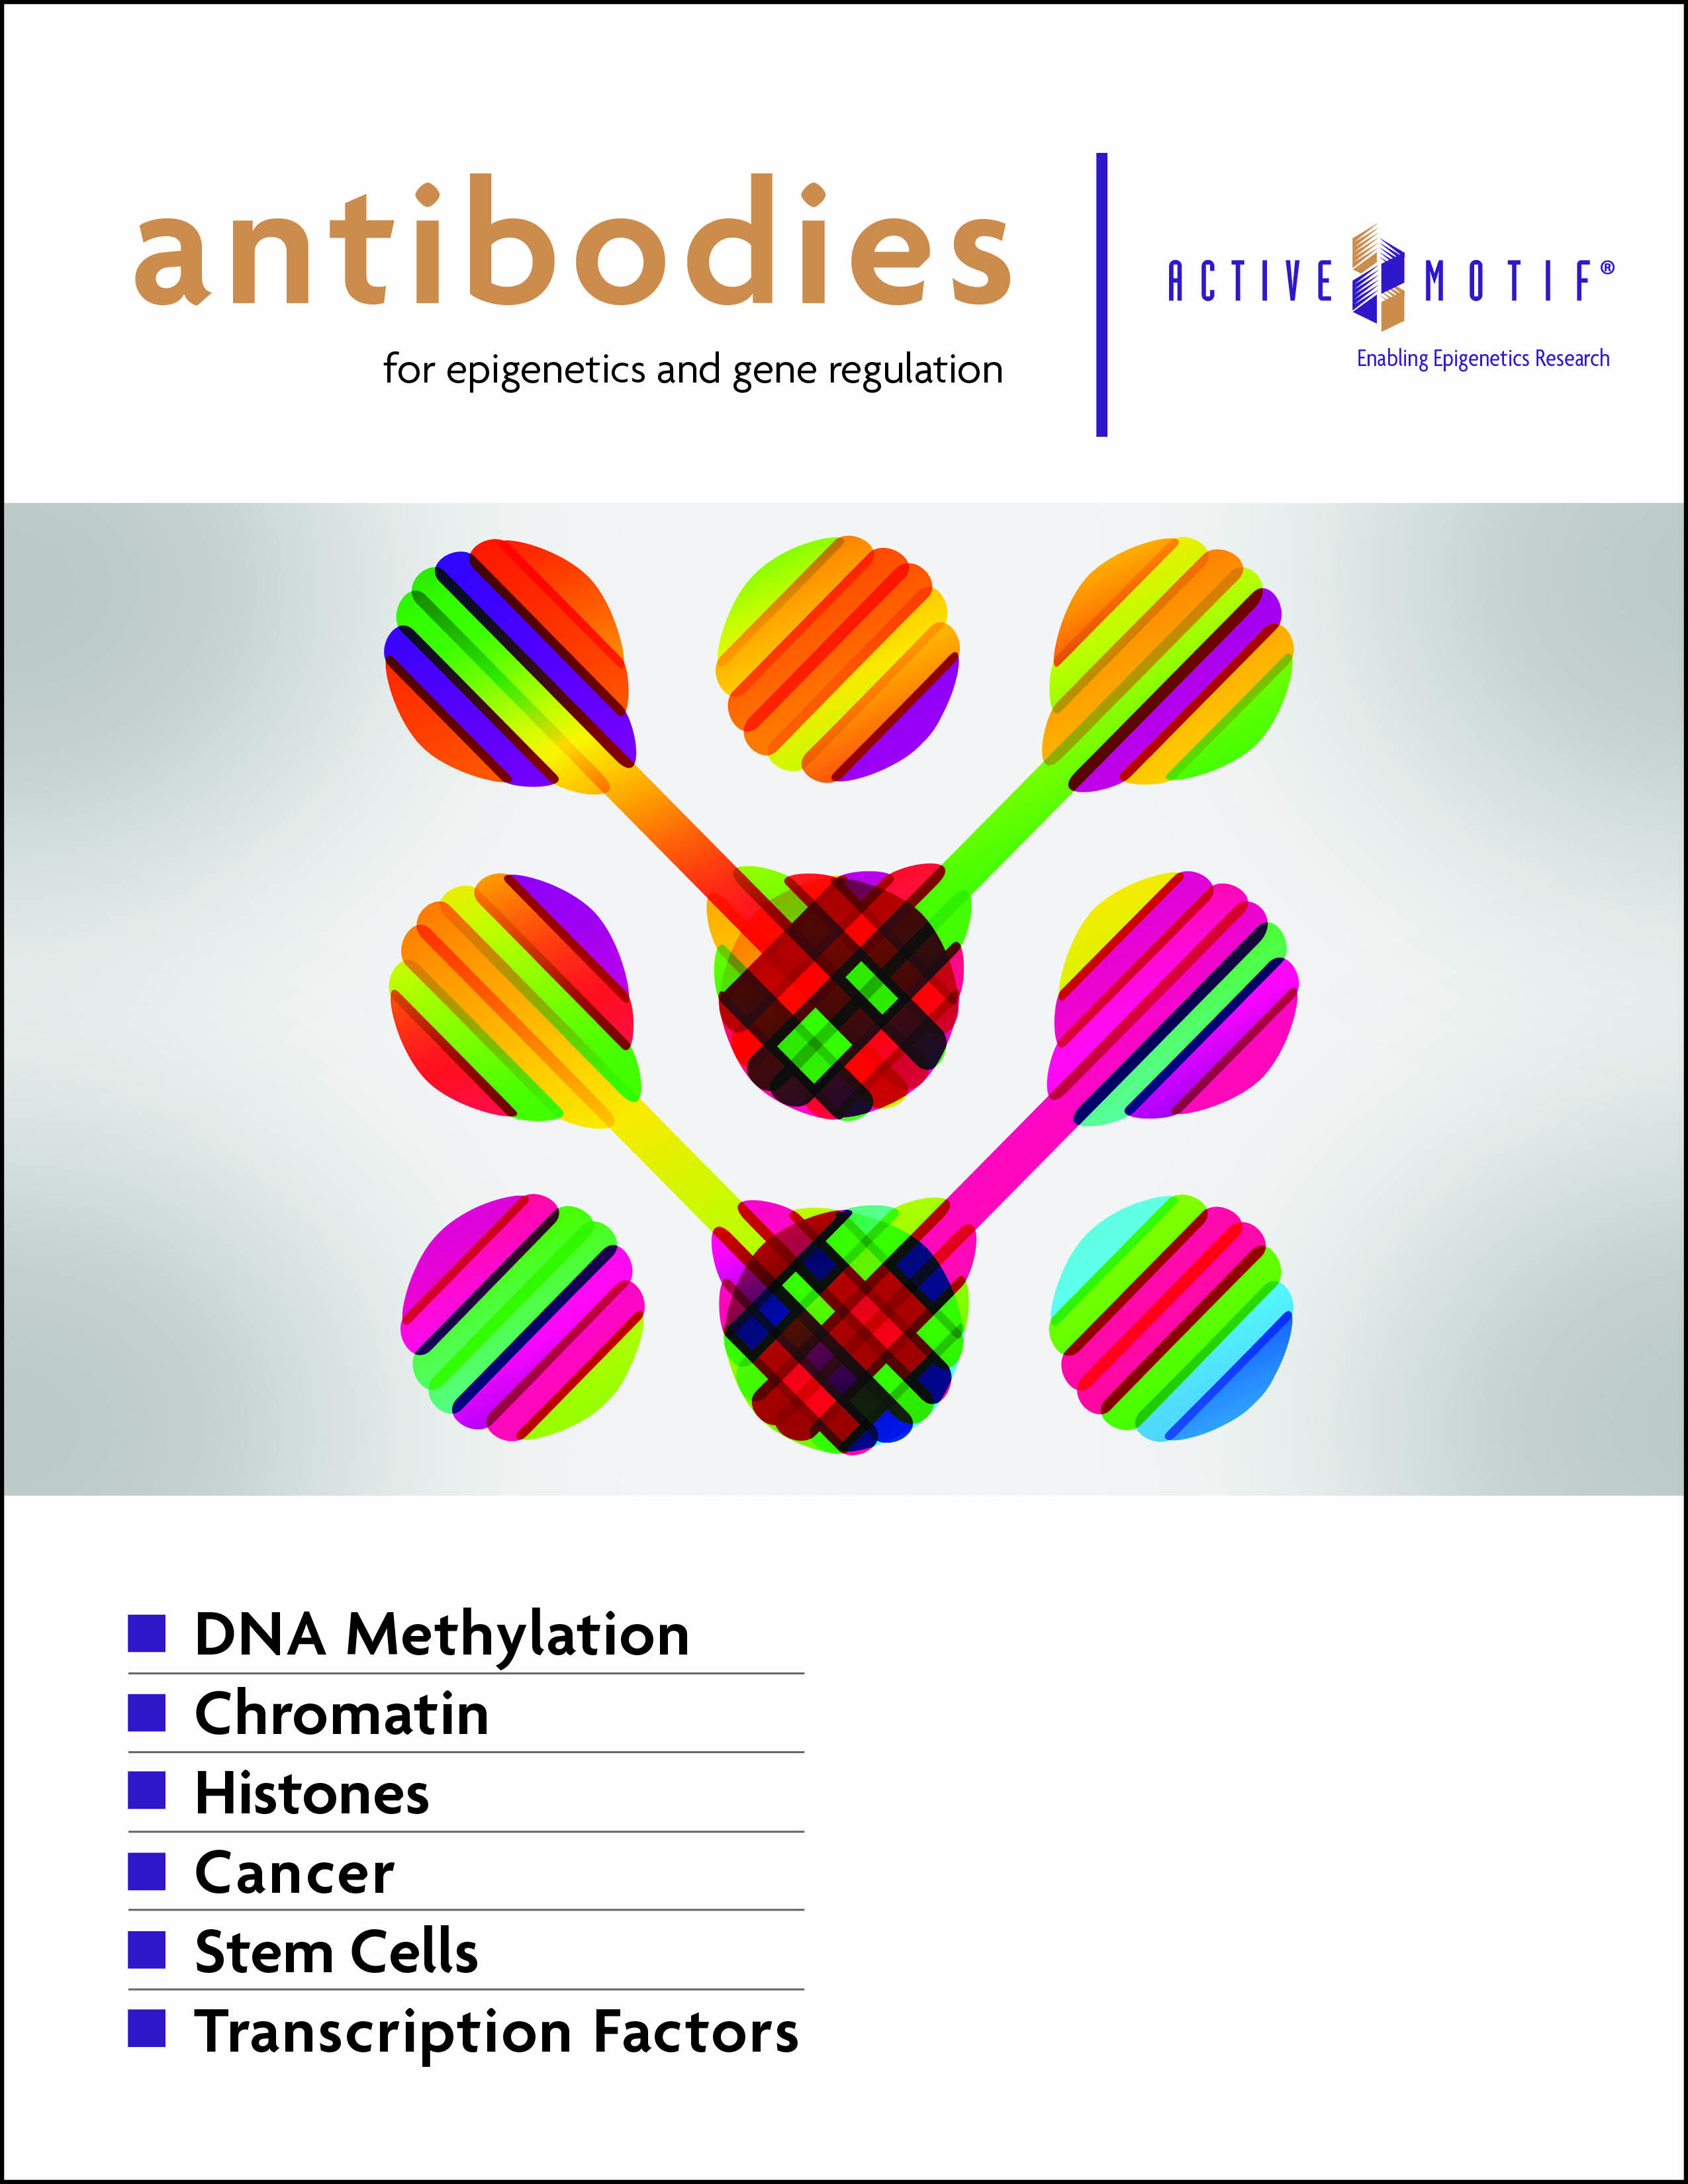 Antibodies for Epigenetics & Gene Regulation